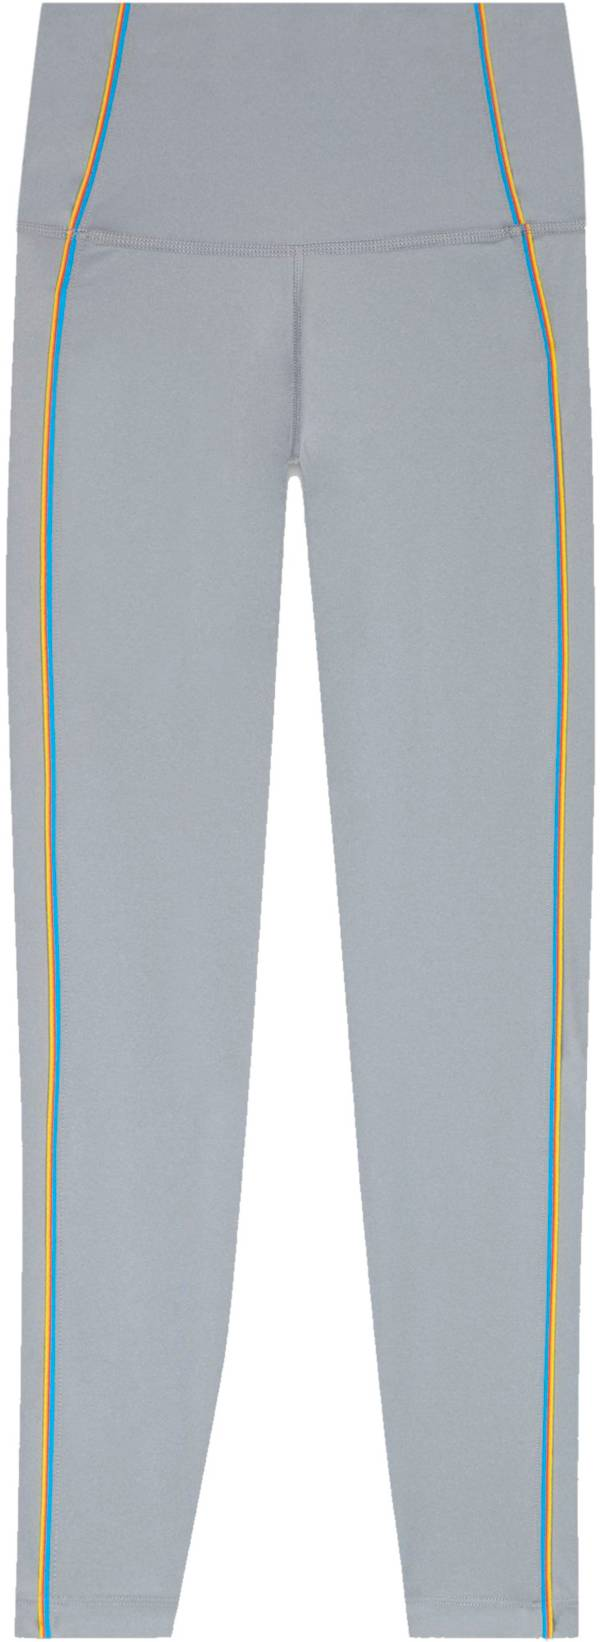 Nike Women's Yoga 7/8 Tights product image